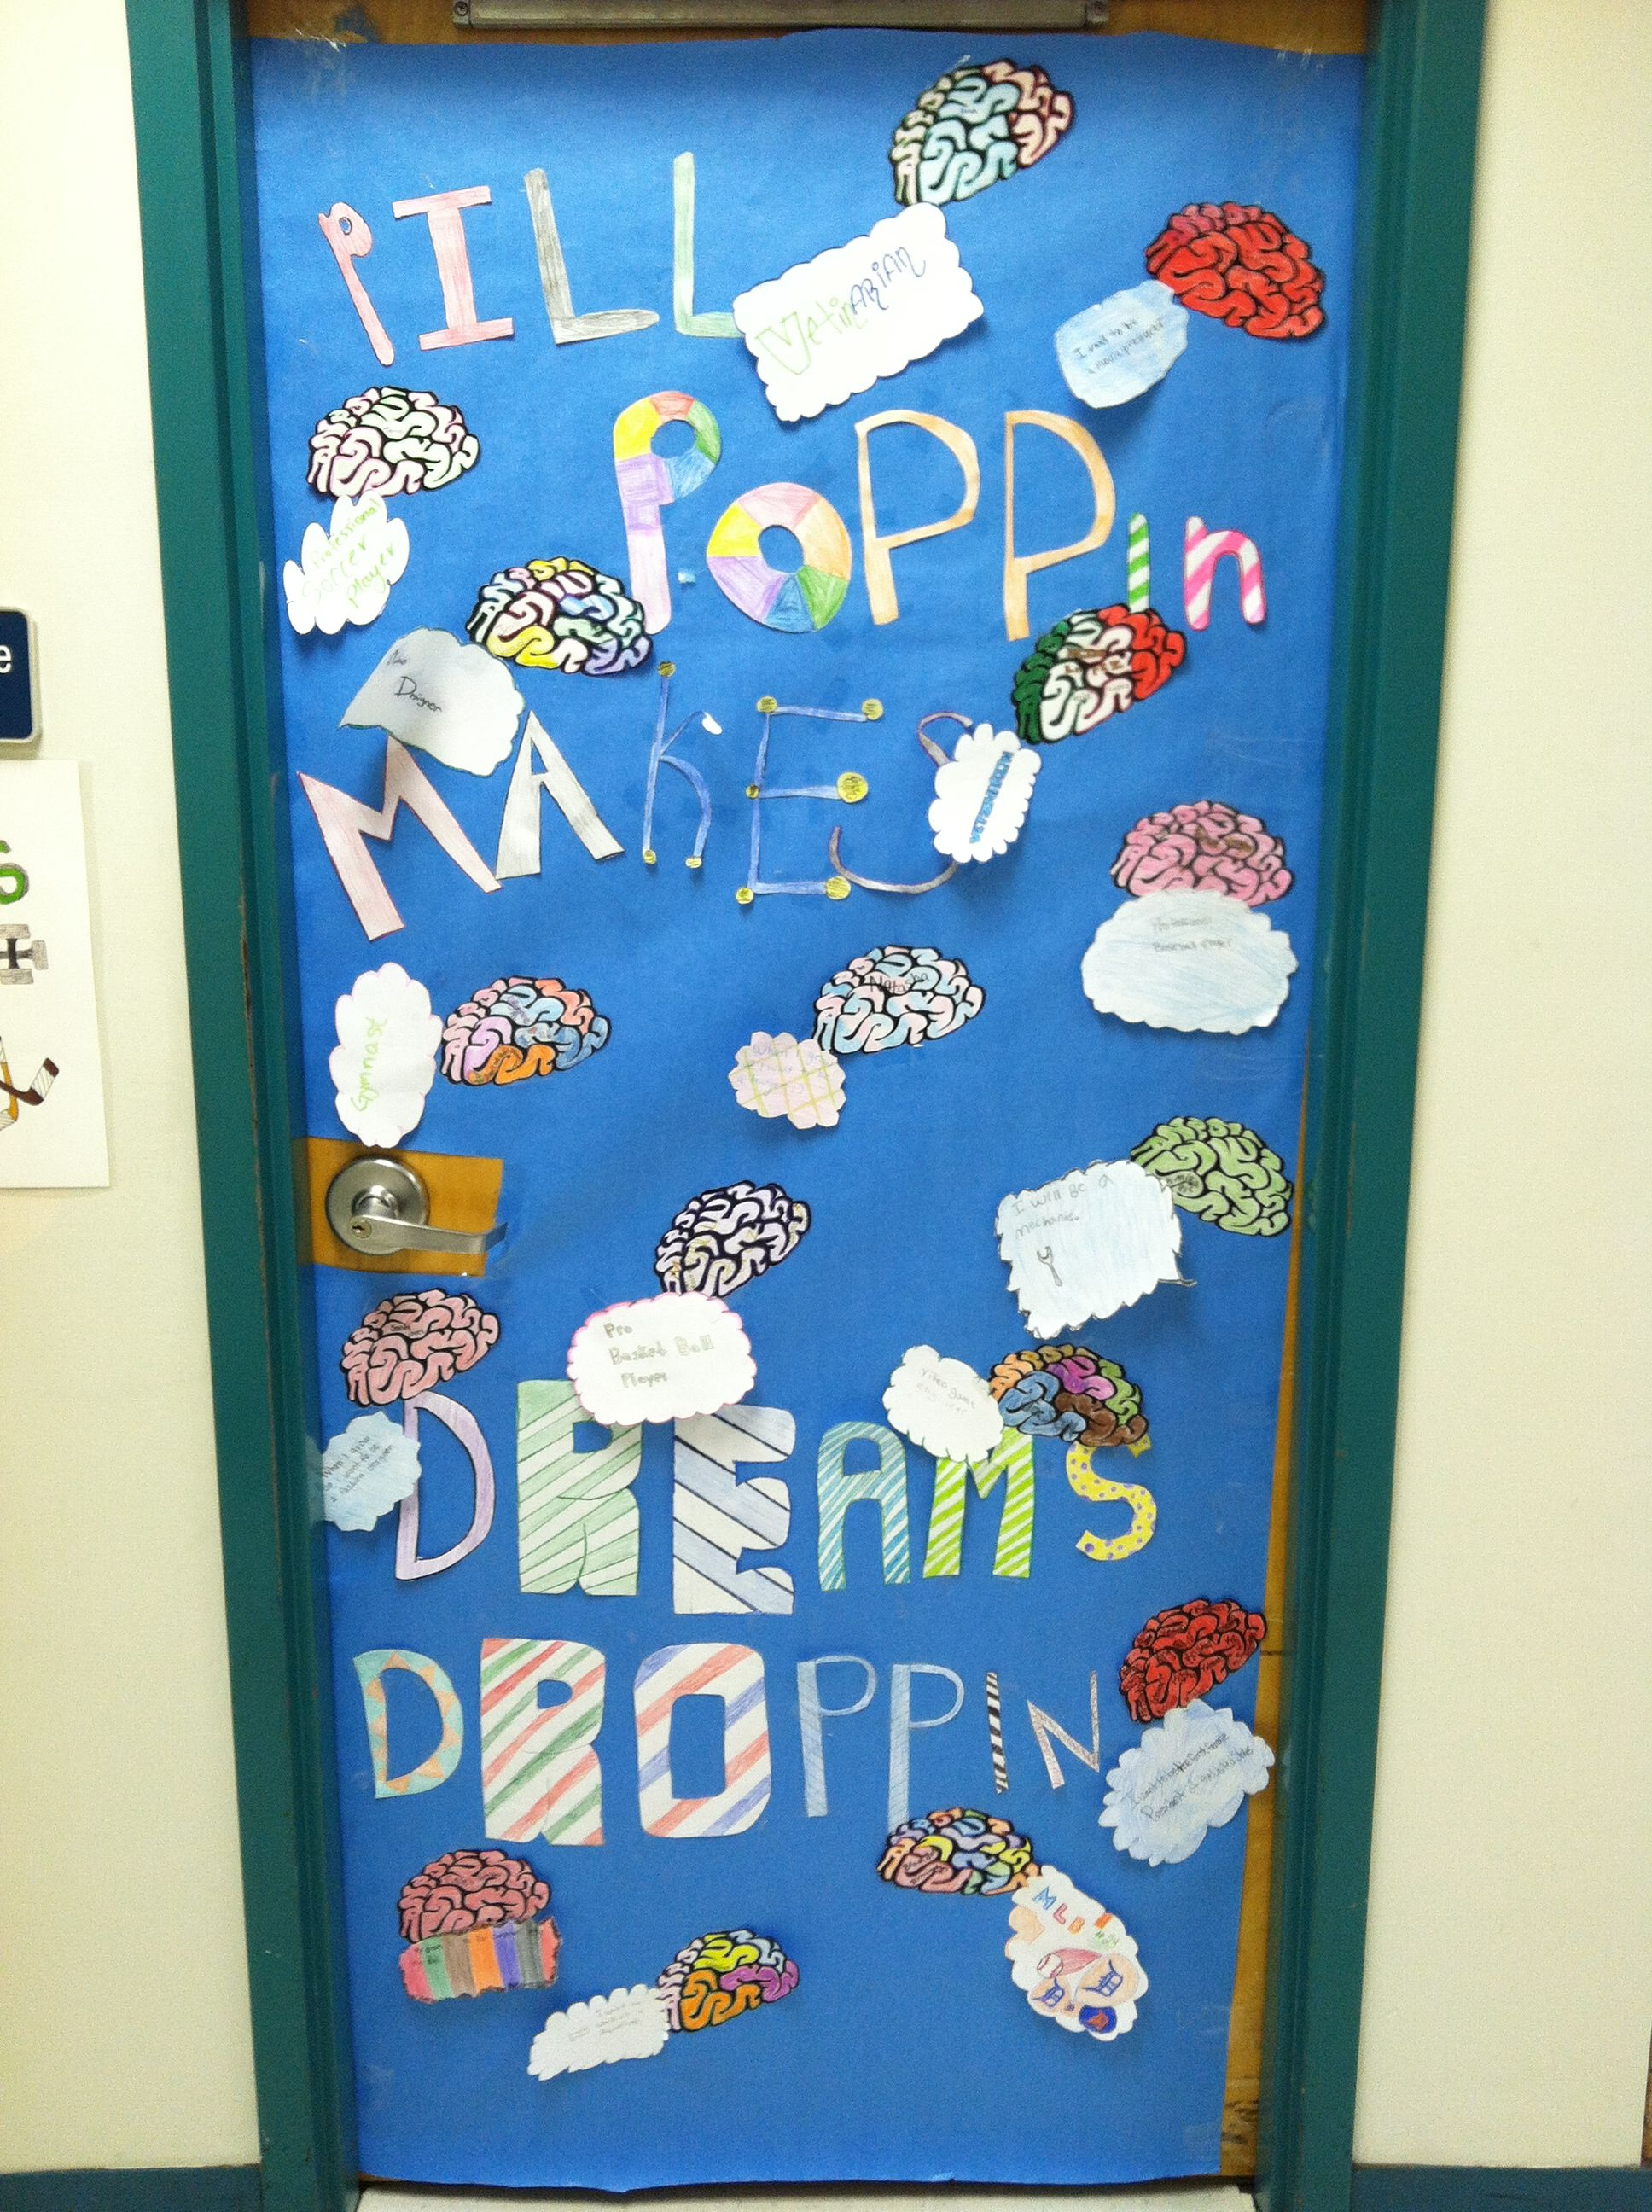 Red Ribbon Week Door Decoration Pill Poppin Makes Dreams